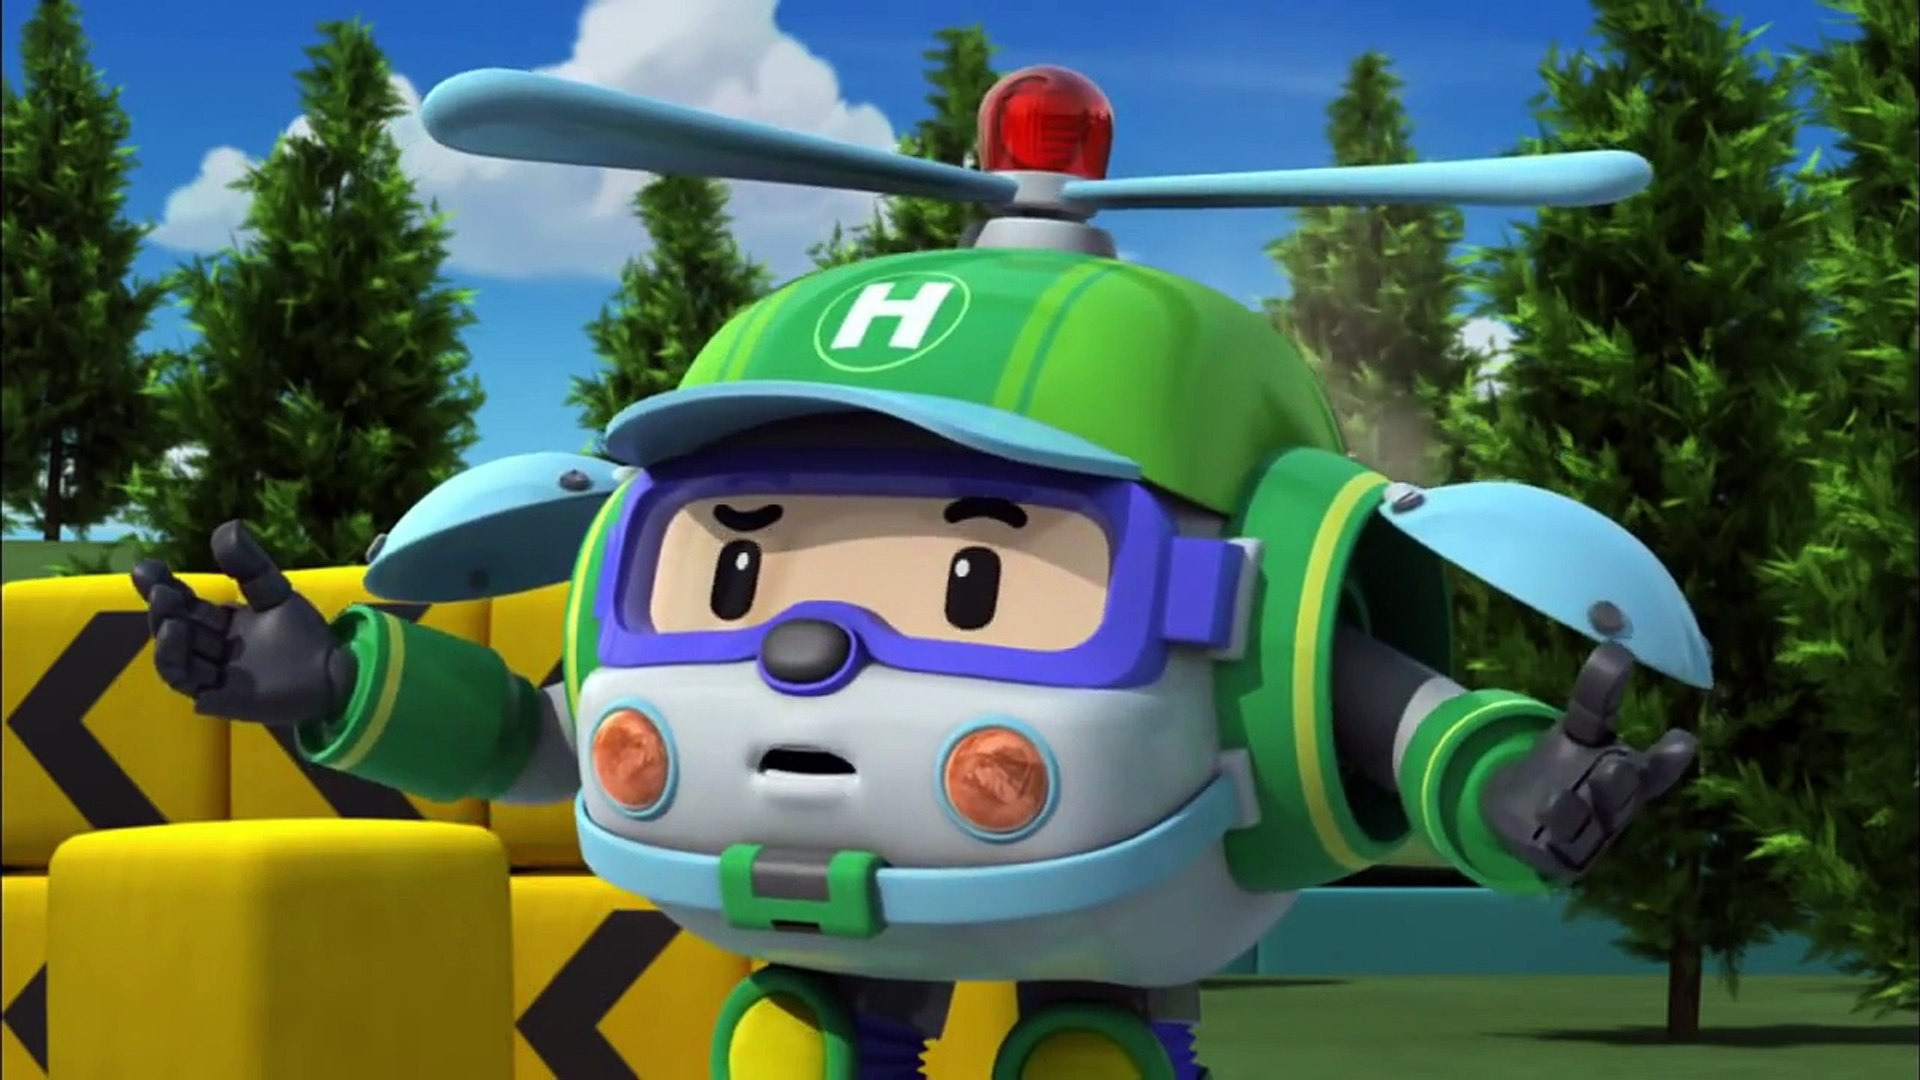 Robocar Poli S1 25 Be Healthy Dailymotion Video